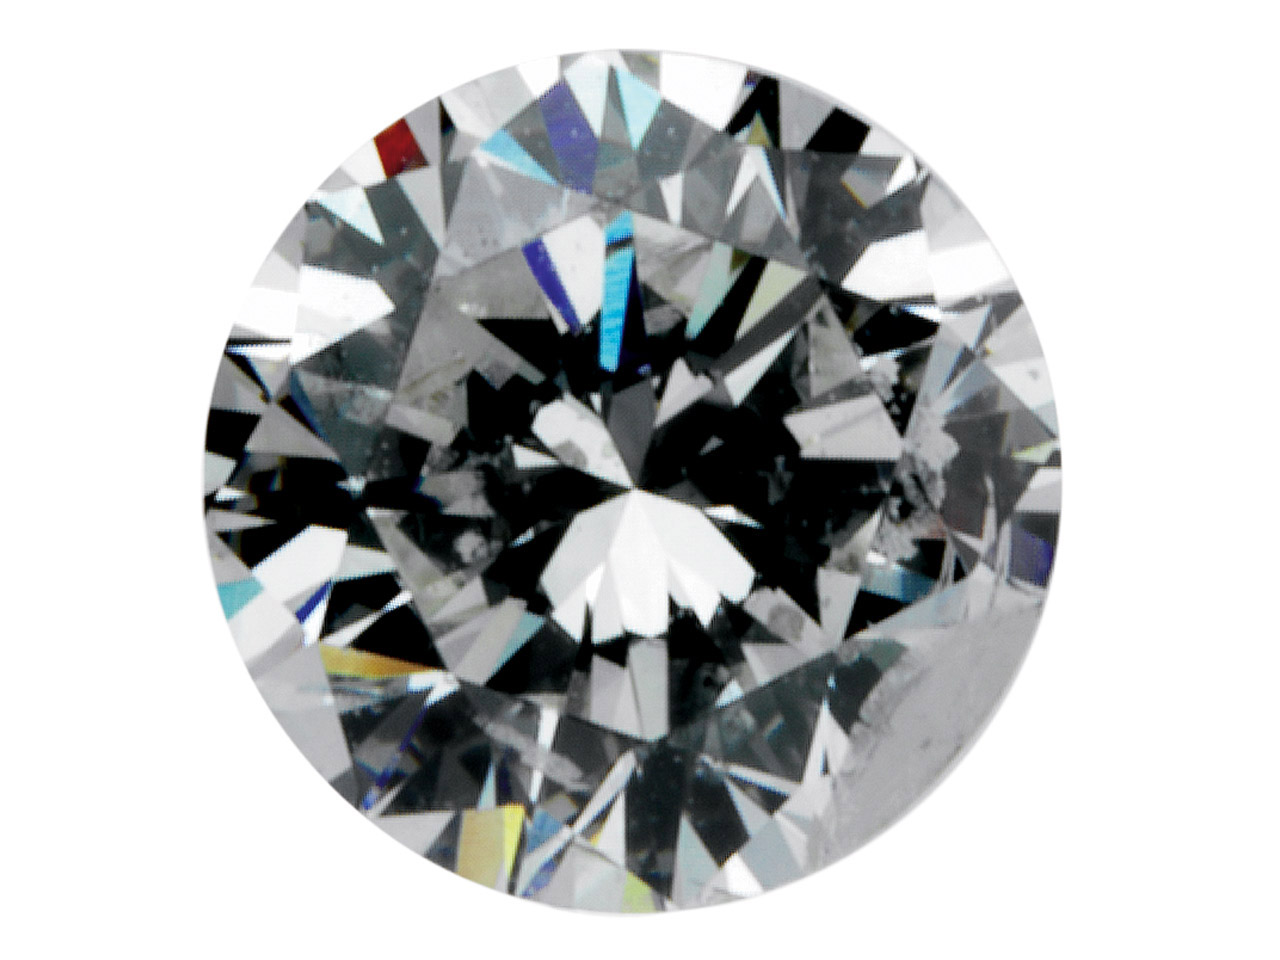 Diamond, Round, H-i/p2, 0.5pt/1mm